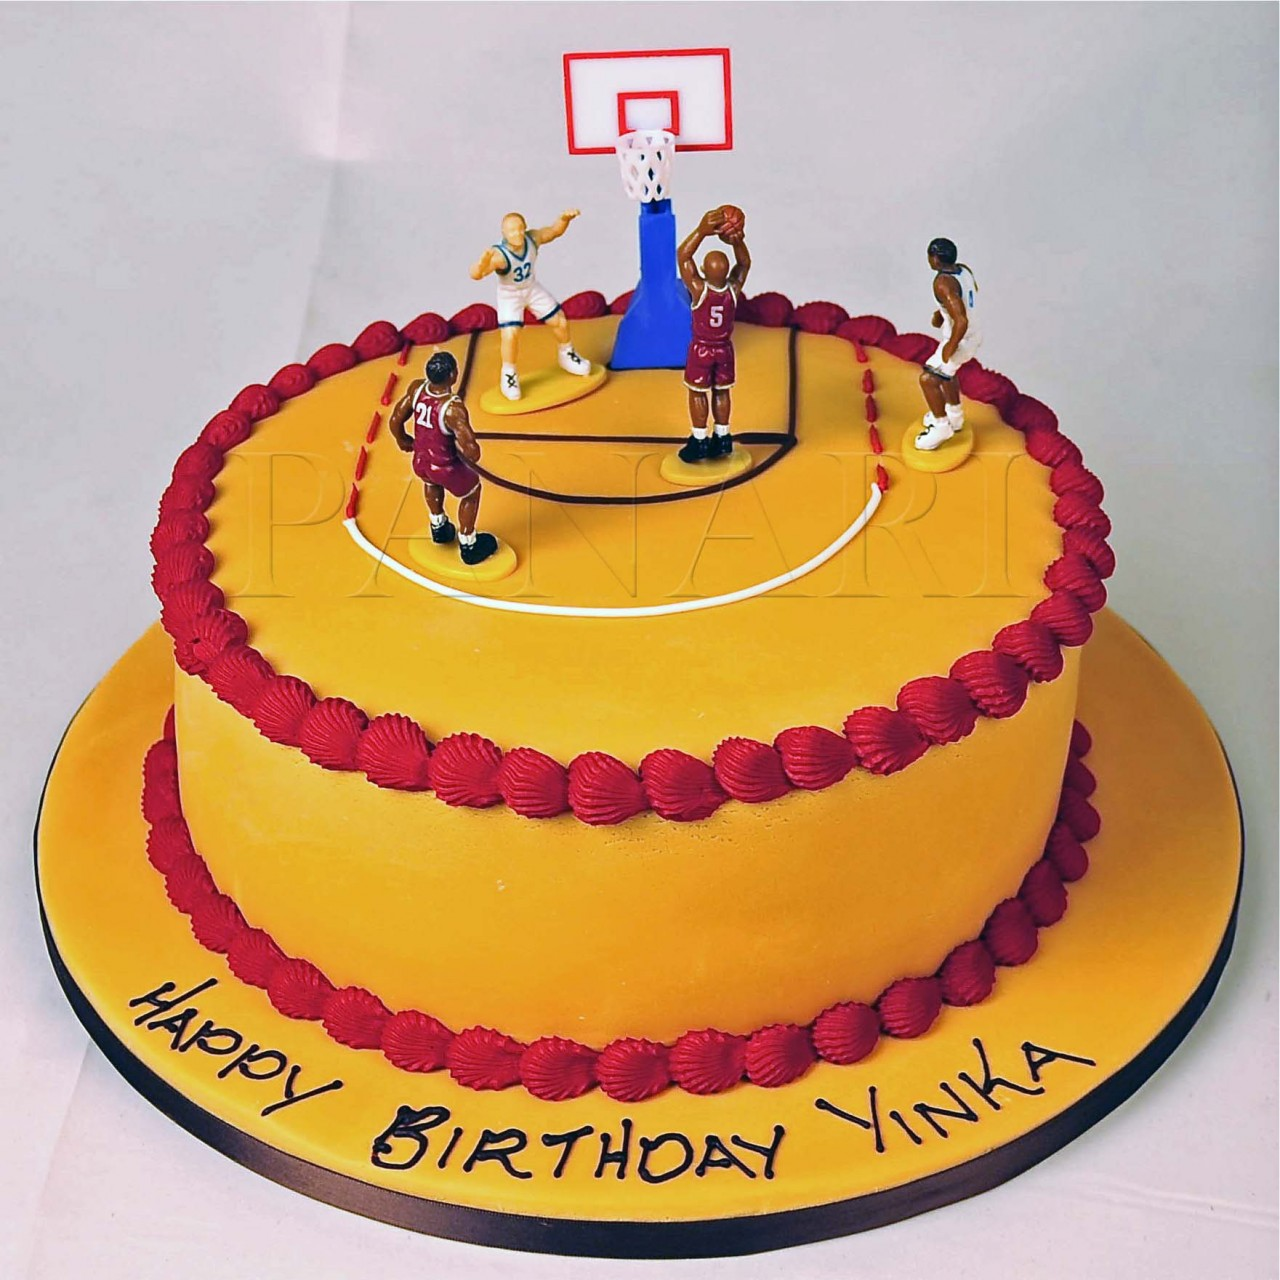 Outstanding Basketball Cakes Decoration Ideas Little Birthday Cakes Funny Birthday Cards Online Unhofree Goldxyz